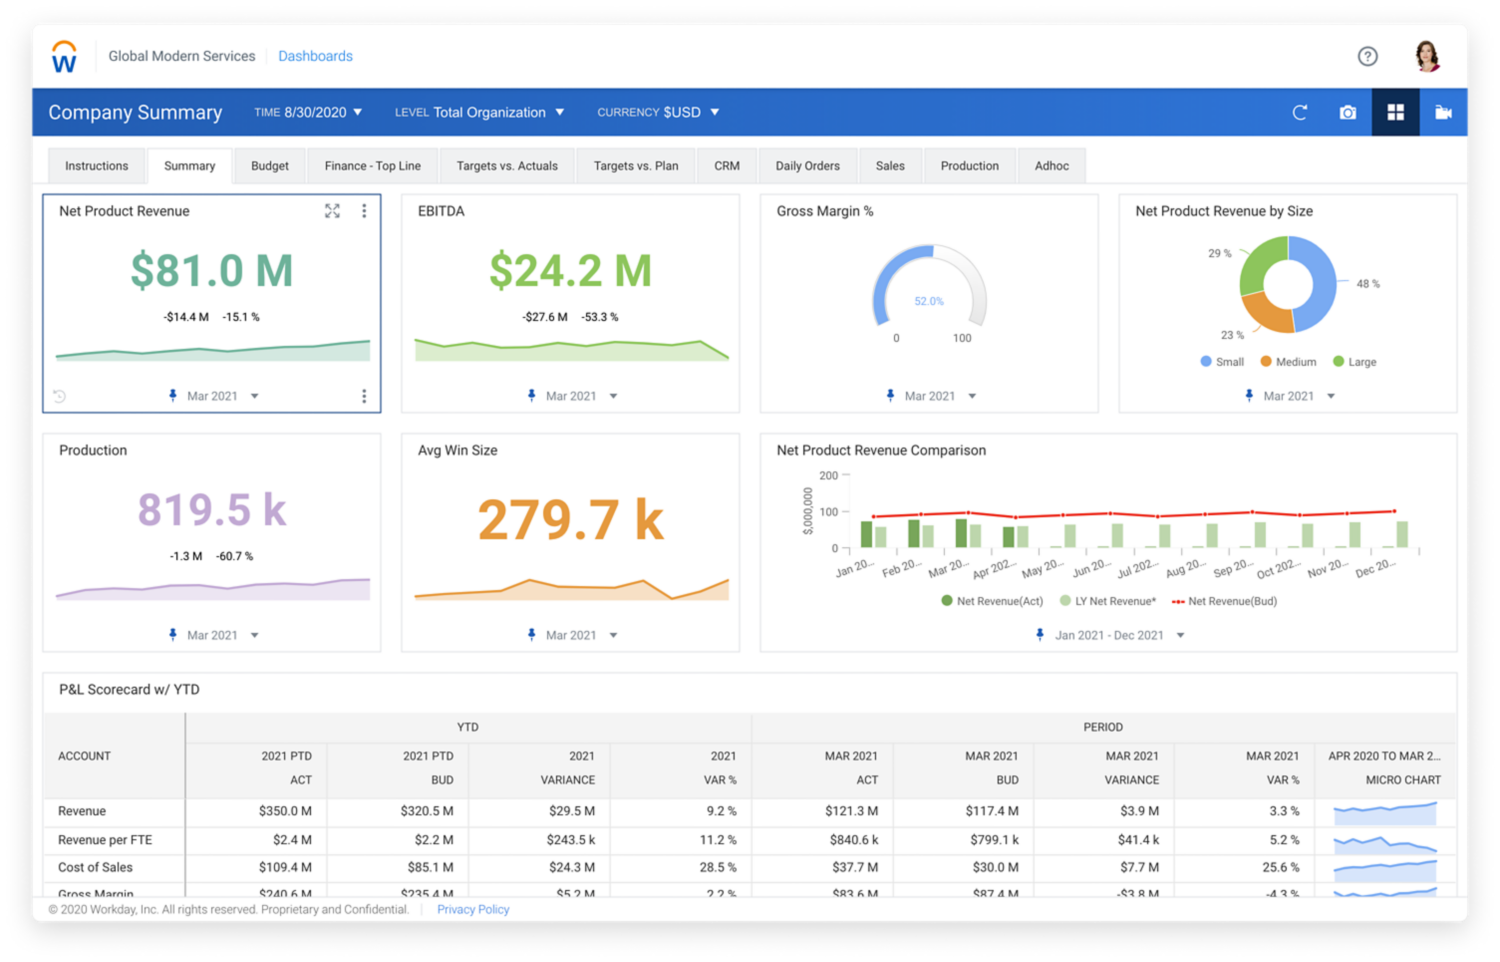 Top Lines dashboard showing bar graphs and numerical values for net revenue, EBITDA and PP&L scorecard.